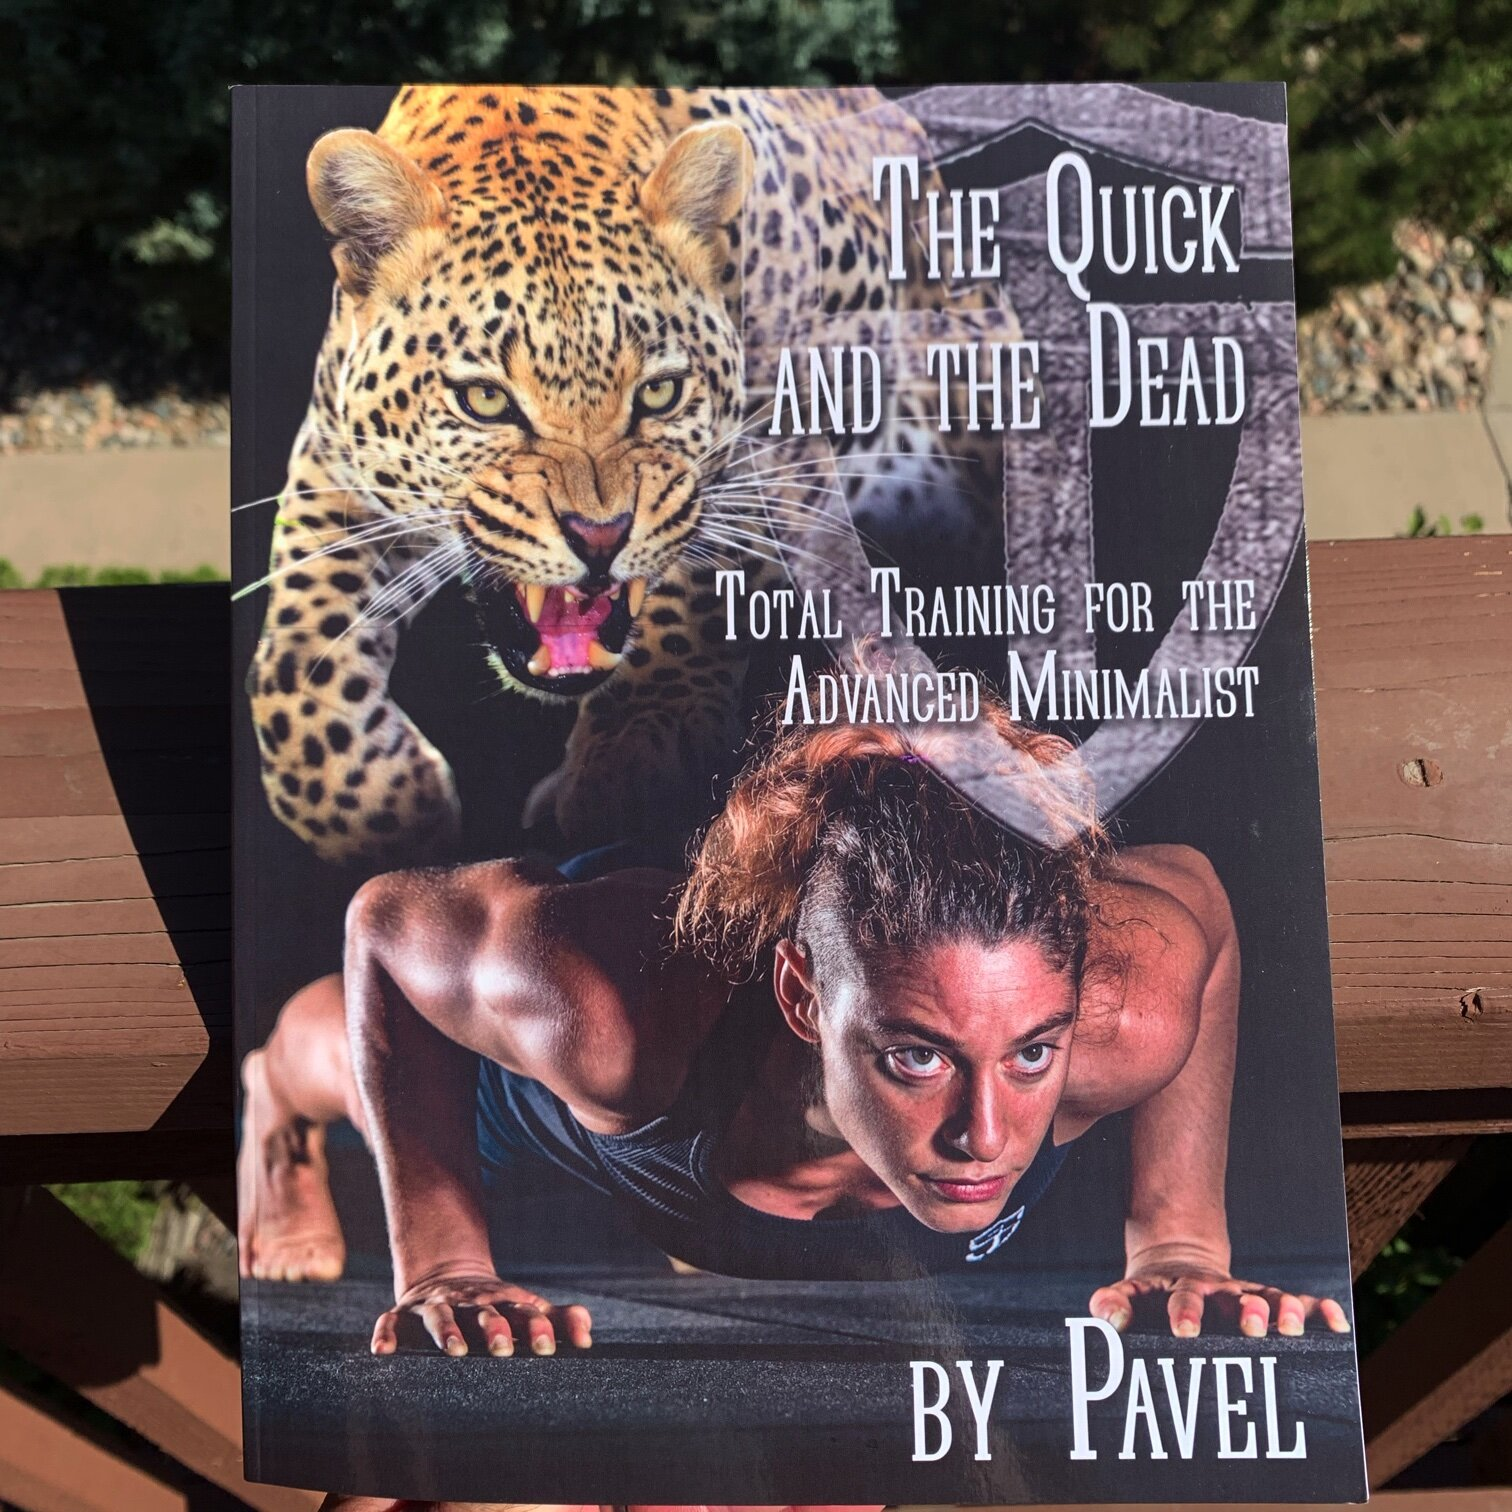 The Quick and The Dead - Pavel's new book